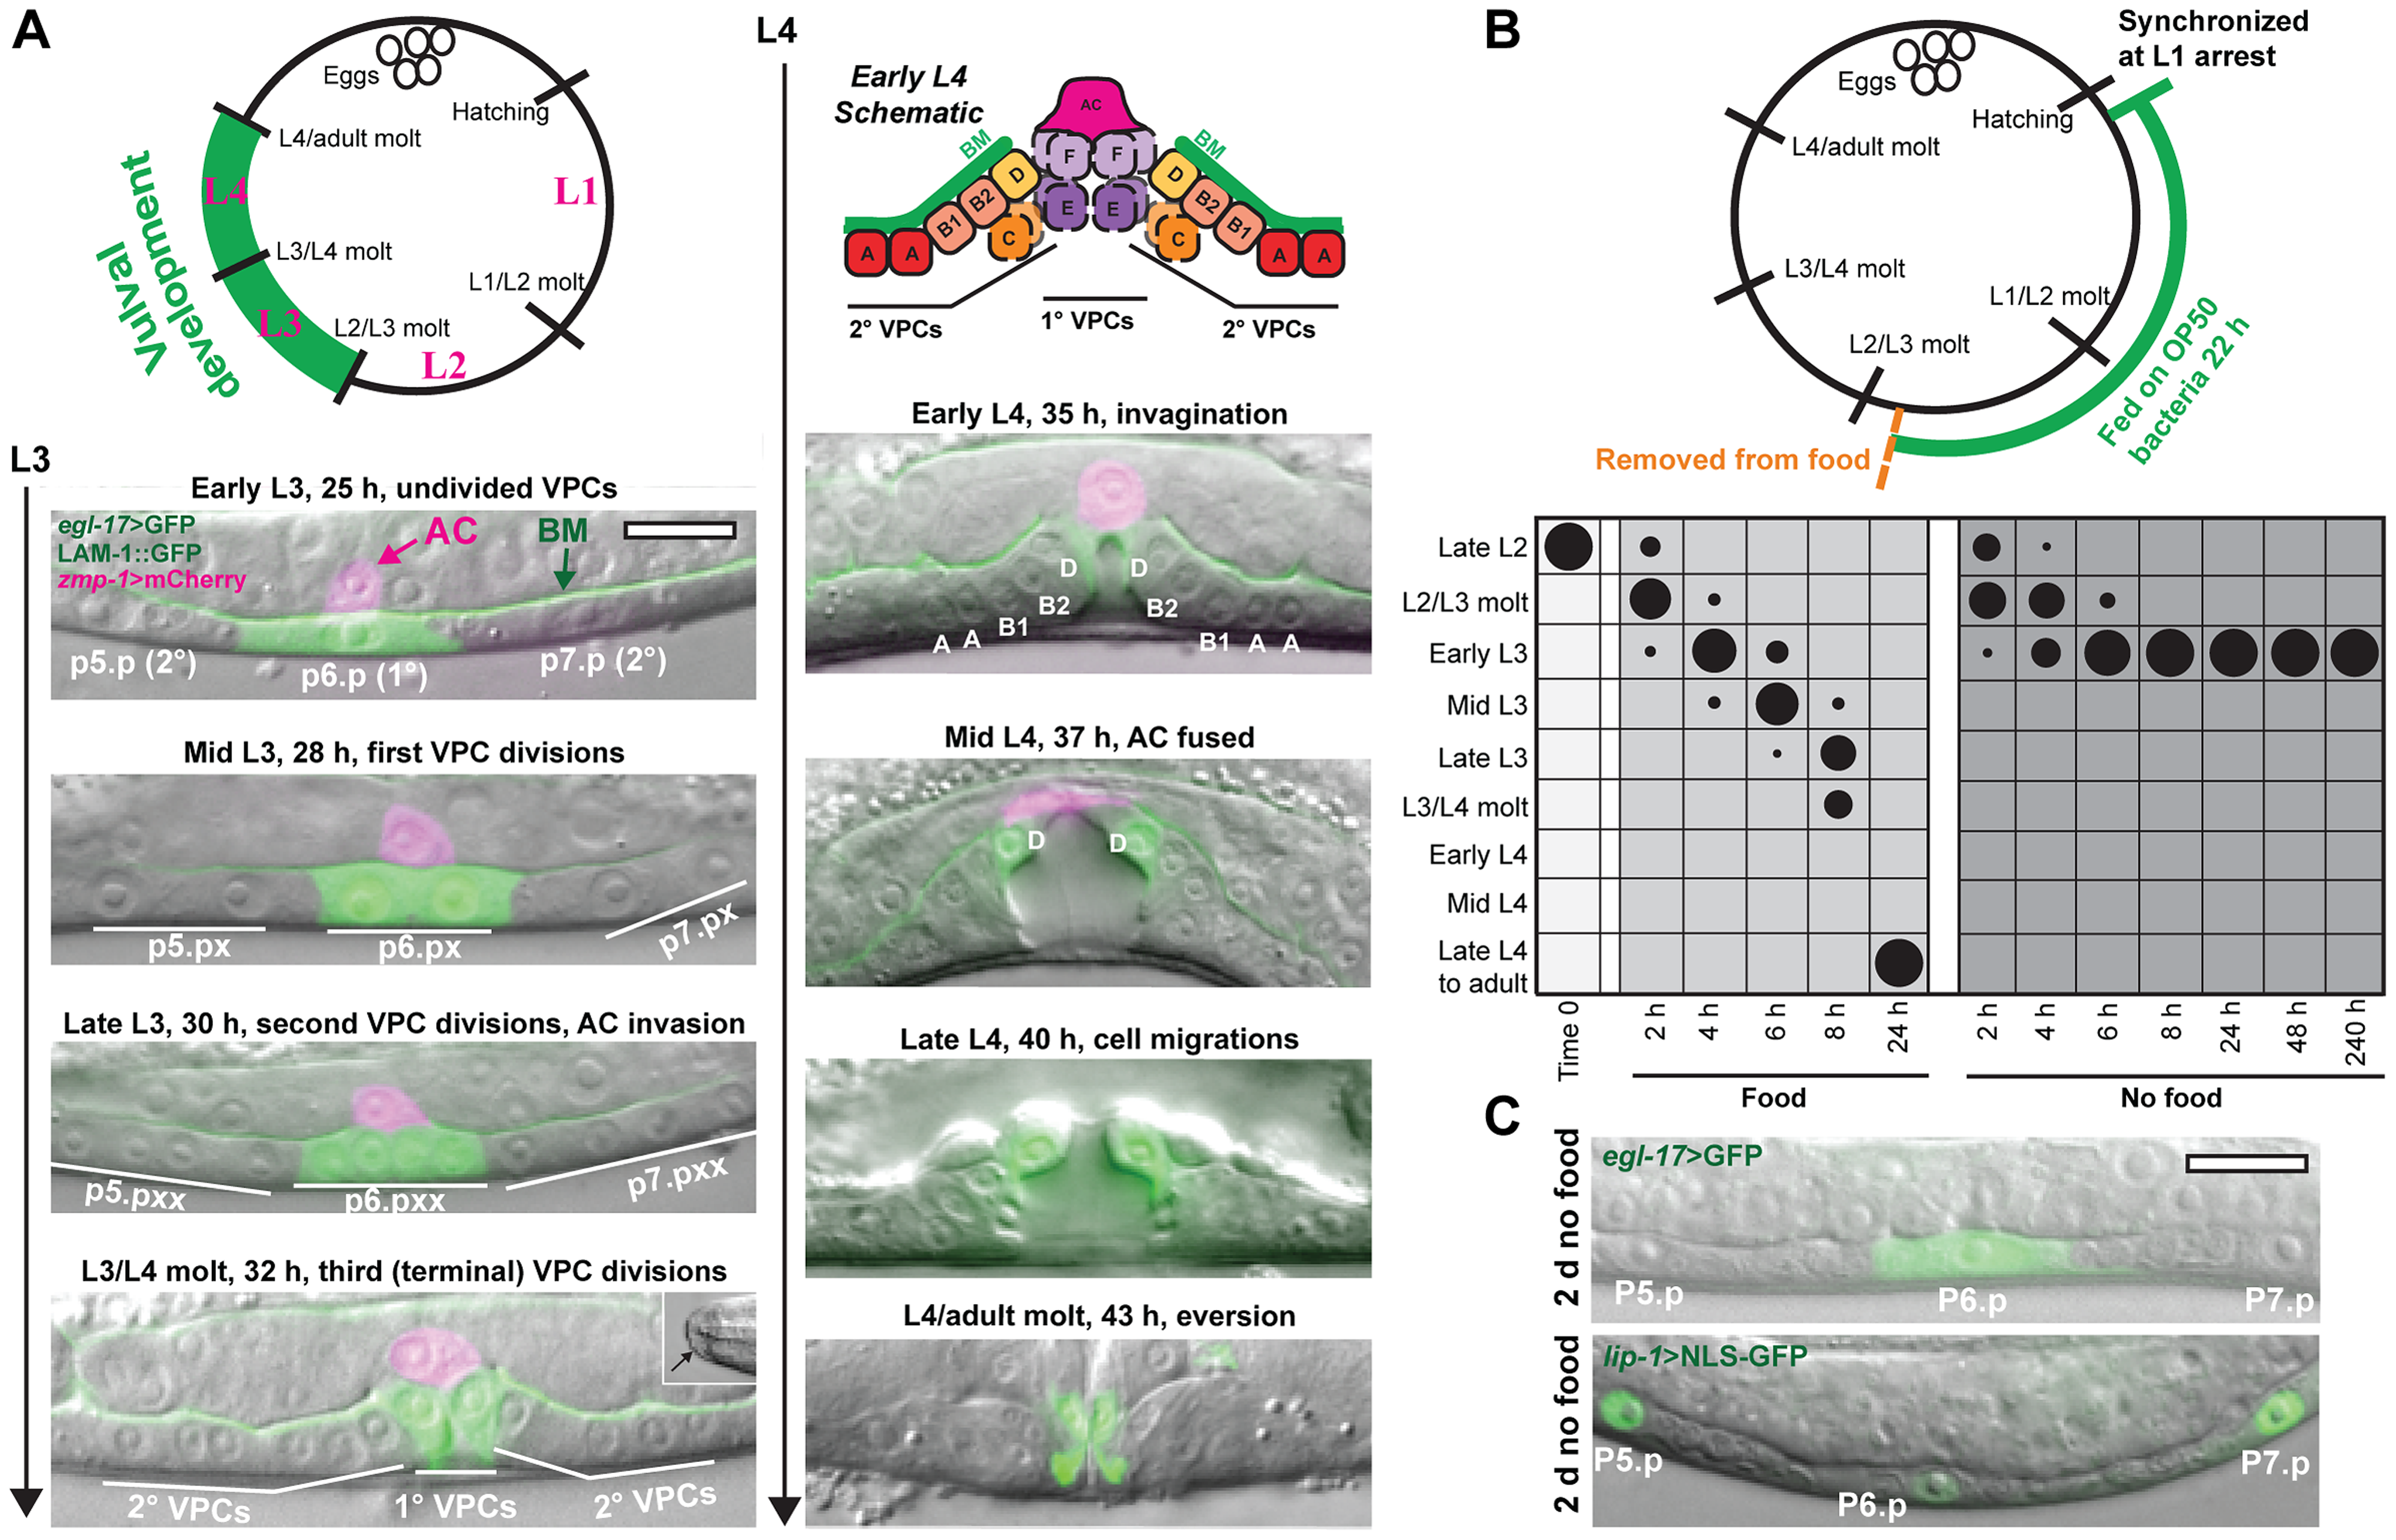 Removal from food induces arrest in vulval development early in the L3 stage.